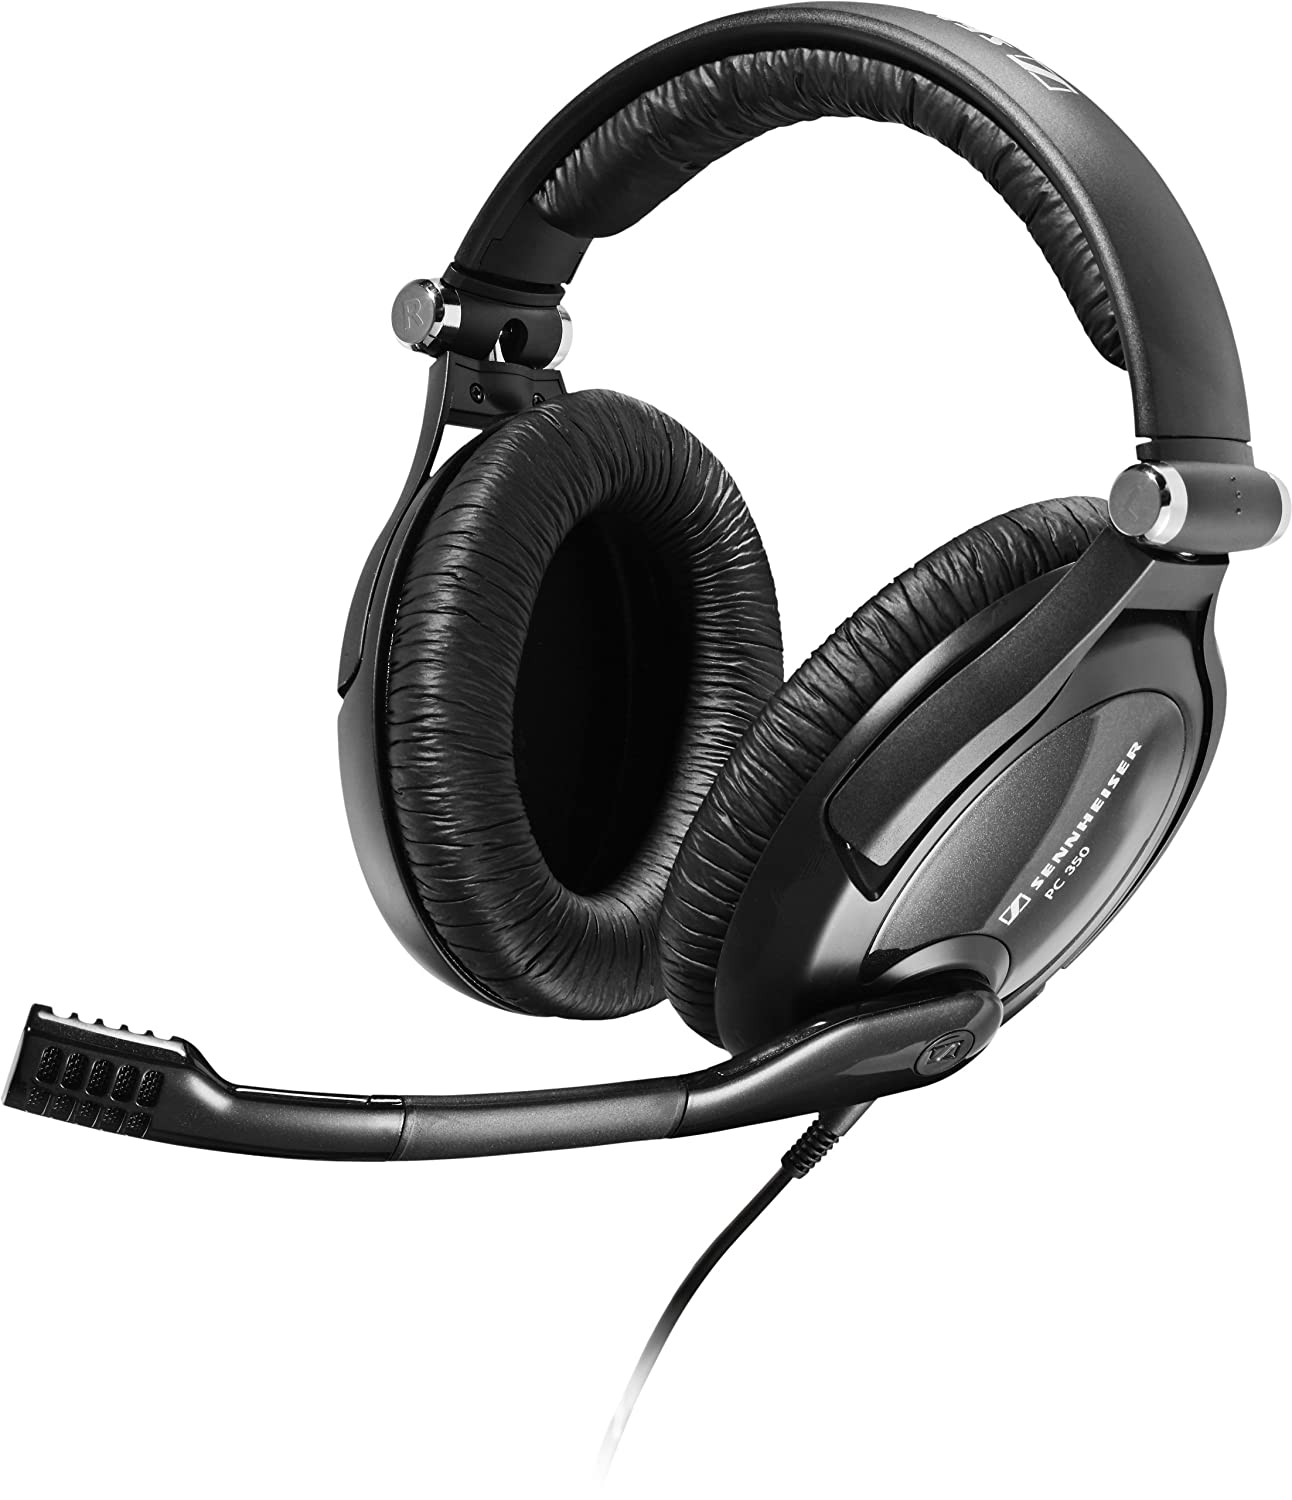 Amazon.com: Sennheiser PC 350 Collapsible Gaming Headset with Vol ...